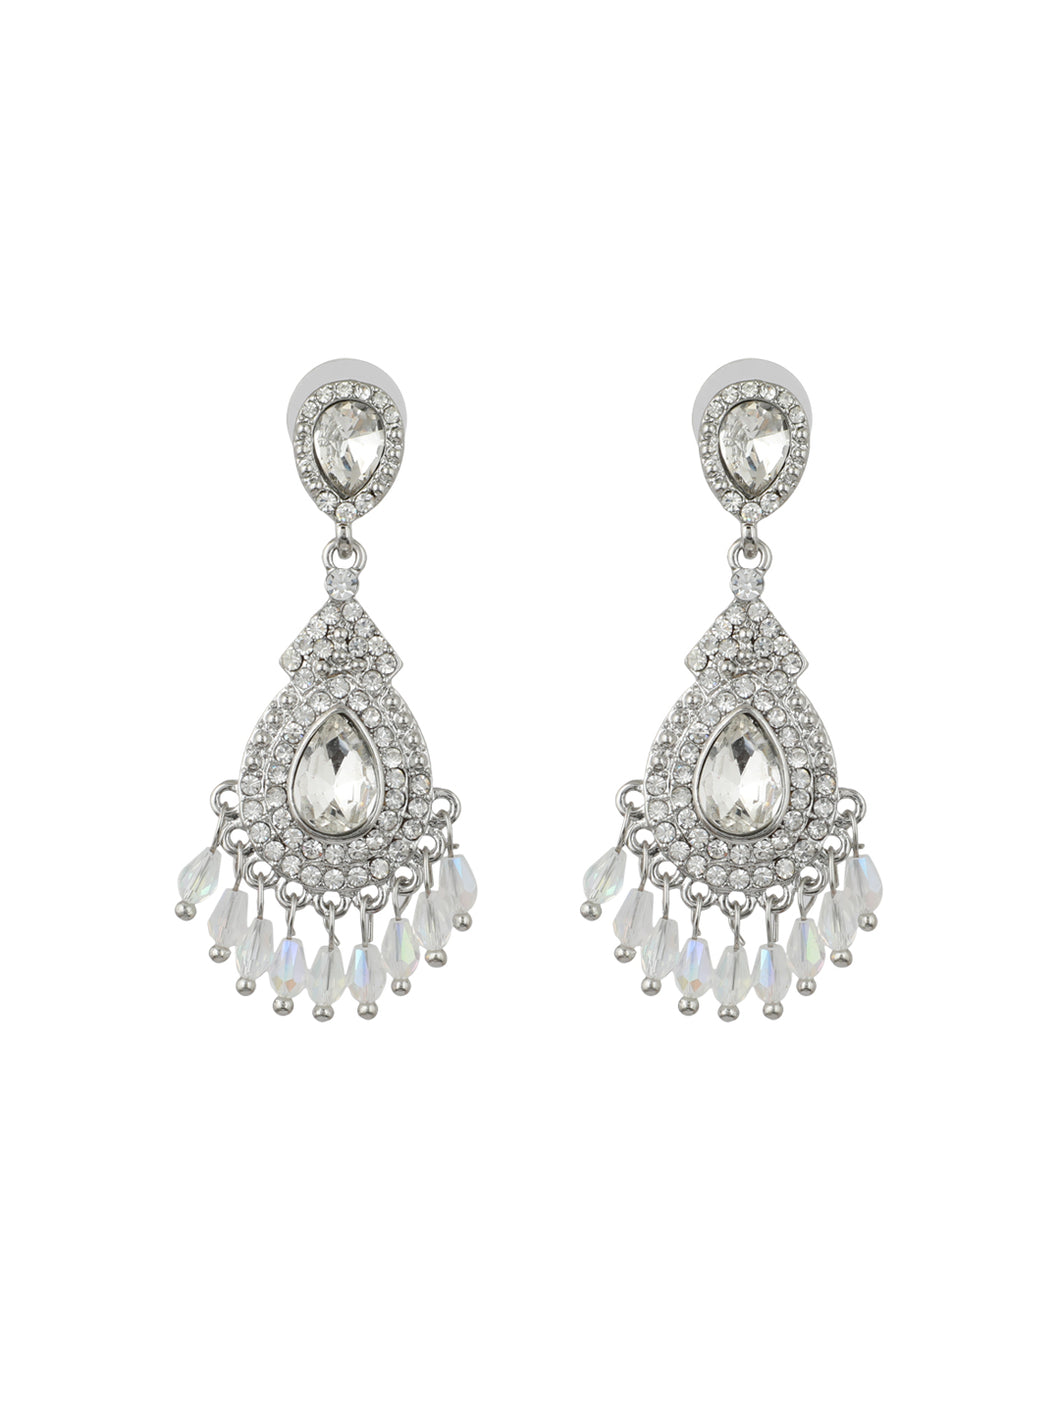 Silver Diamond Studded Drop Earrings